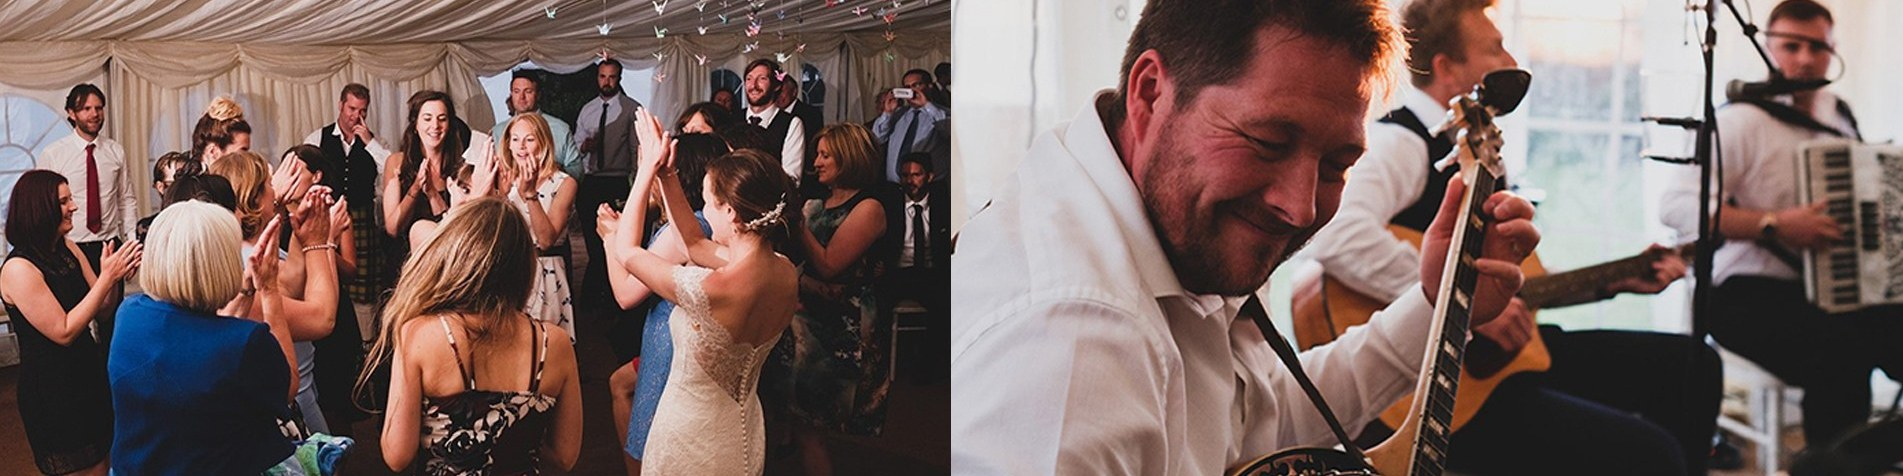 Top 10 Wedding First Dances for a Ceilidh or Folk Band to Play